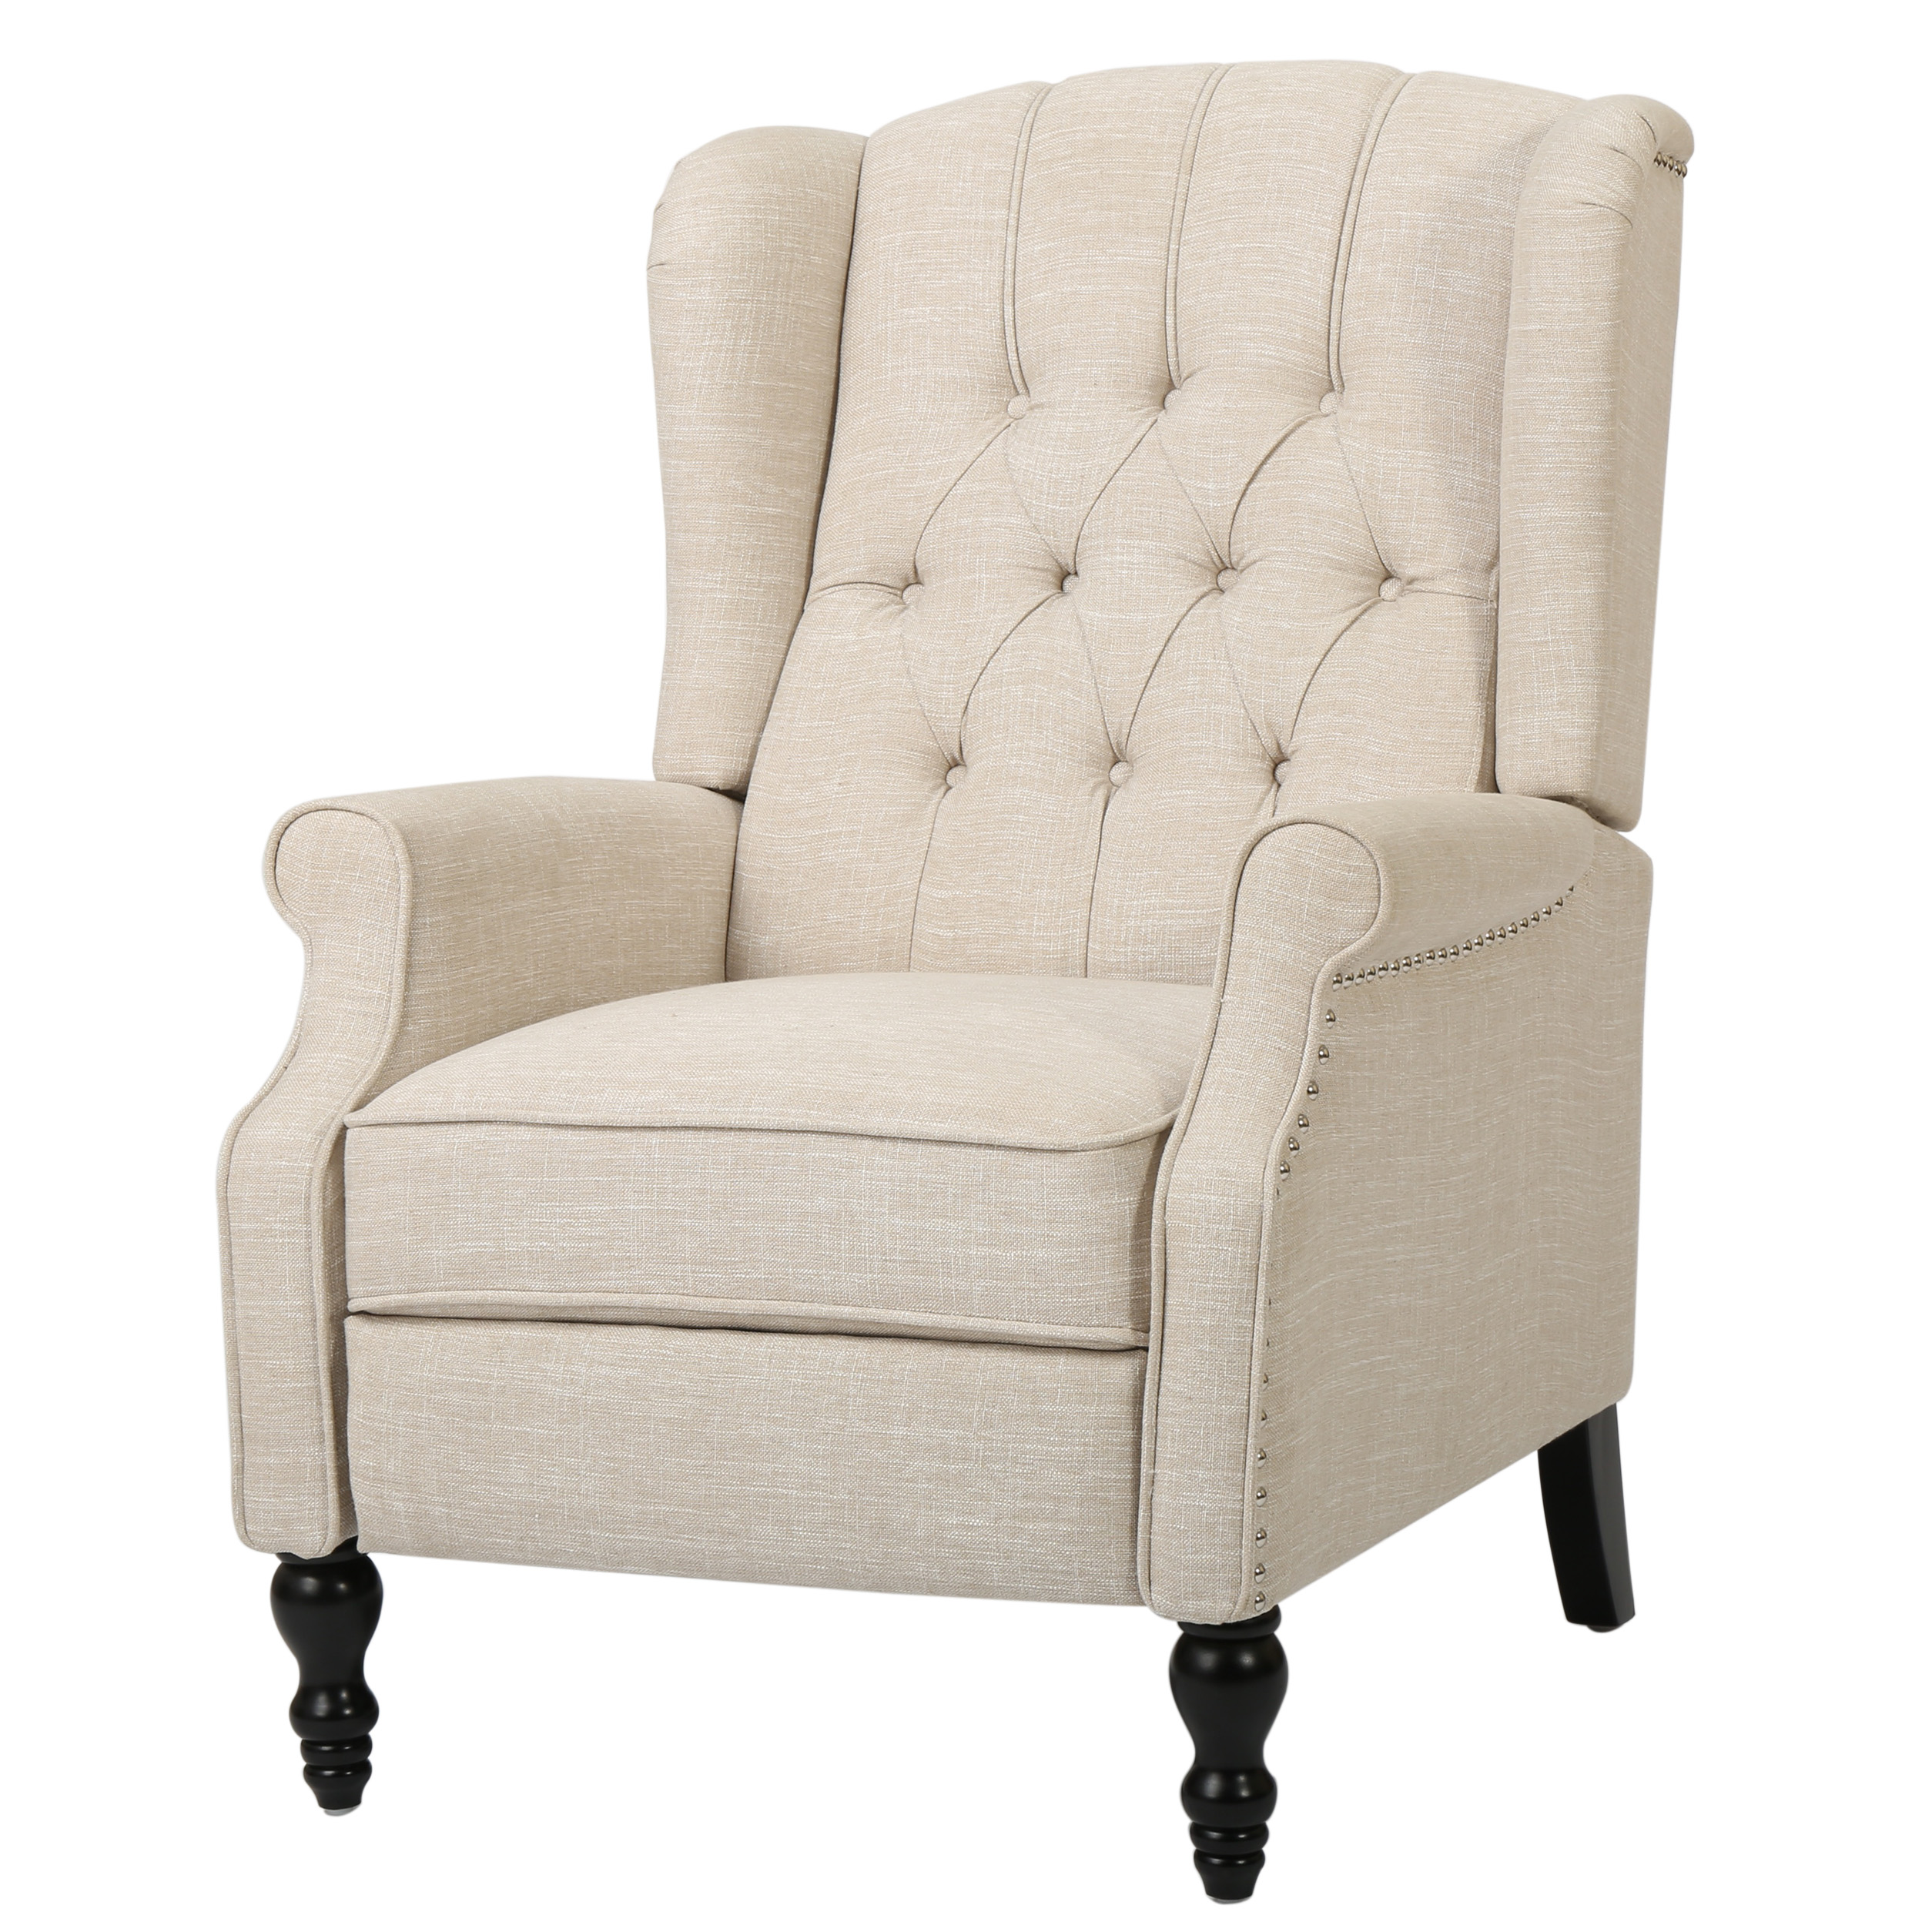 Meyer Recliner, Light Beige